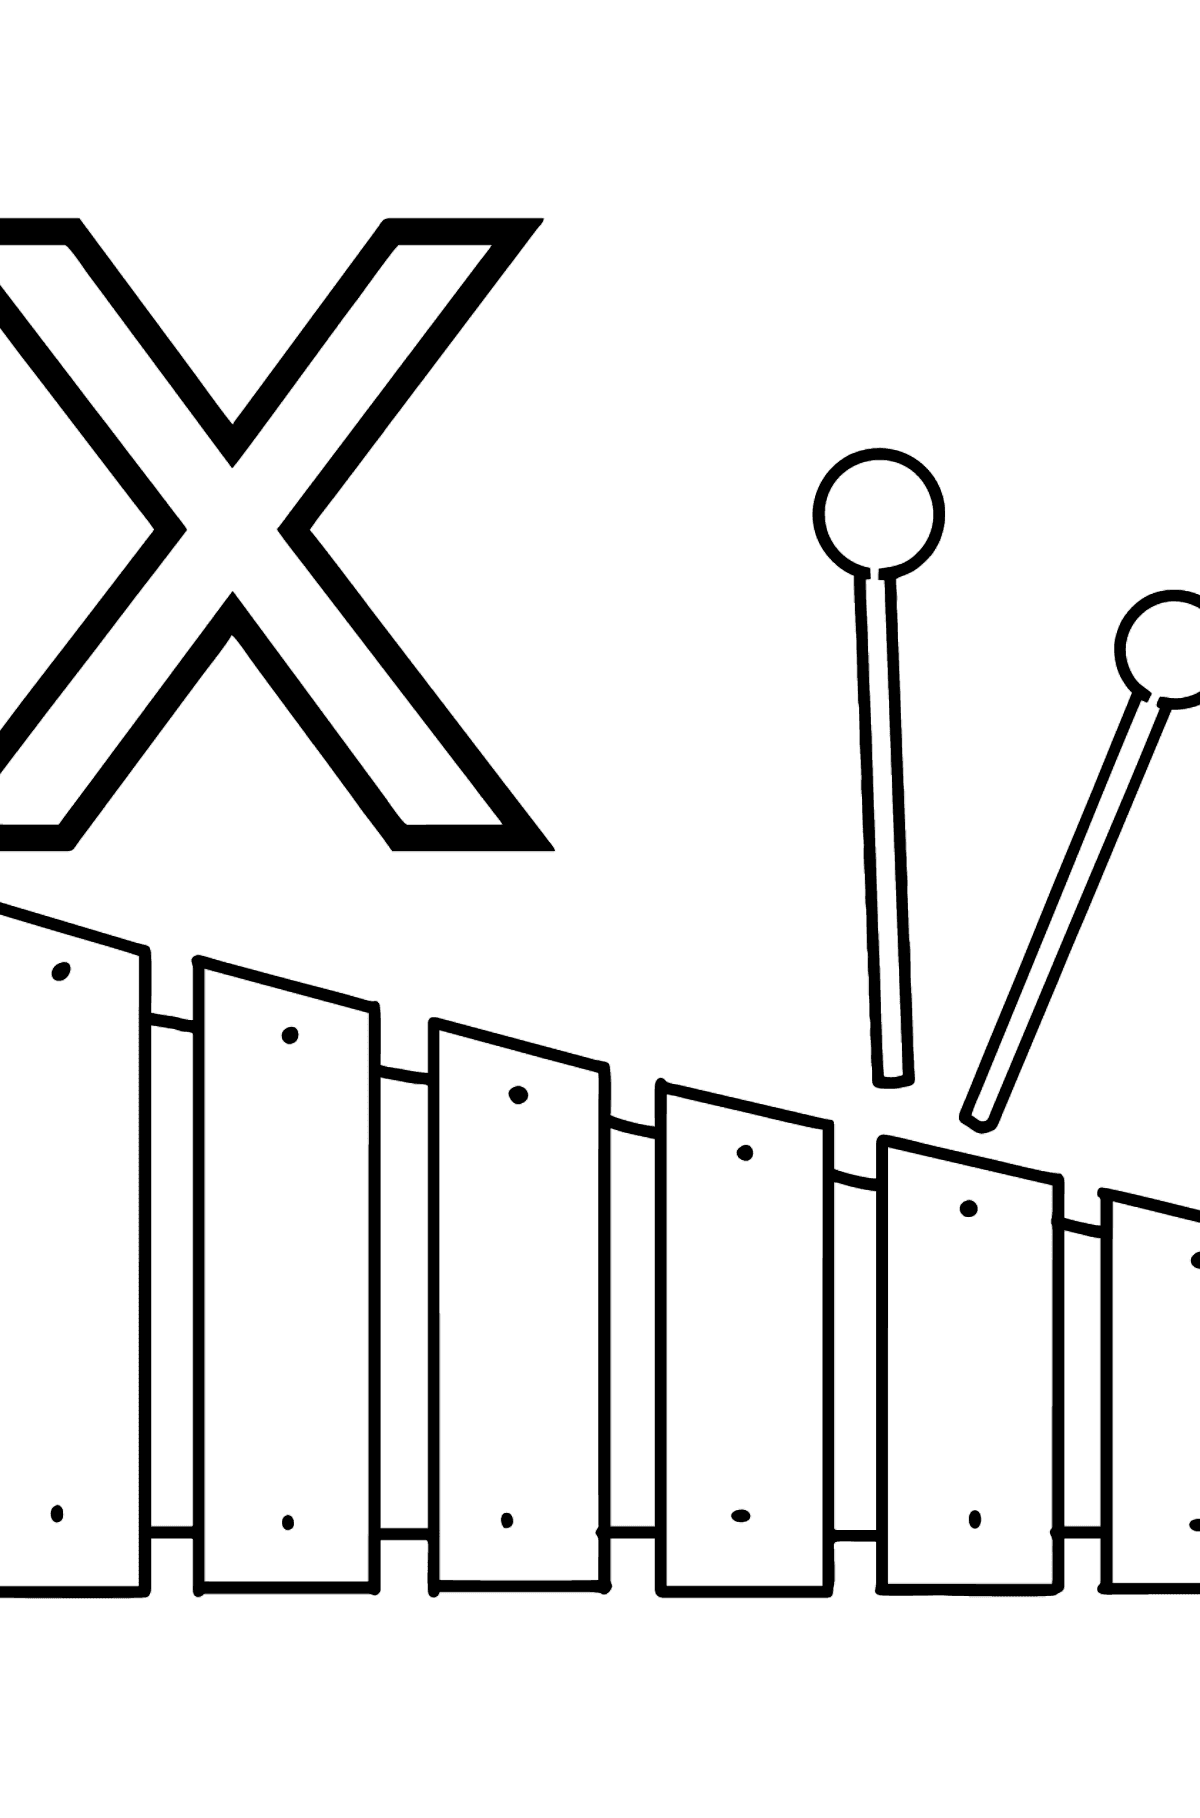 Spanish Letter X coloring pages - XILÓFONO - Coloring Pages for Kids